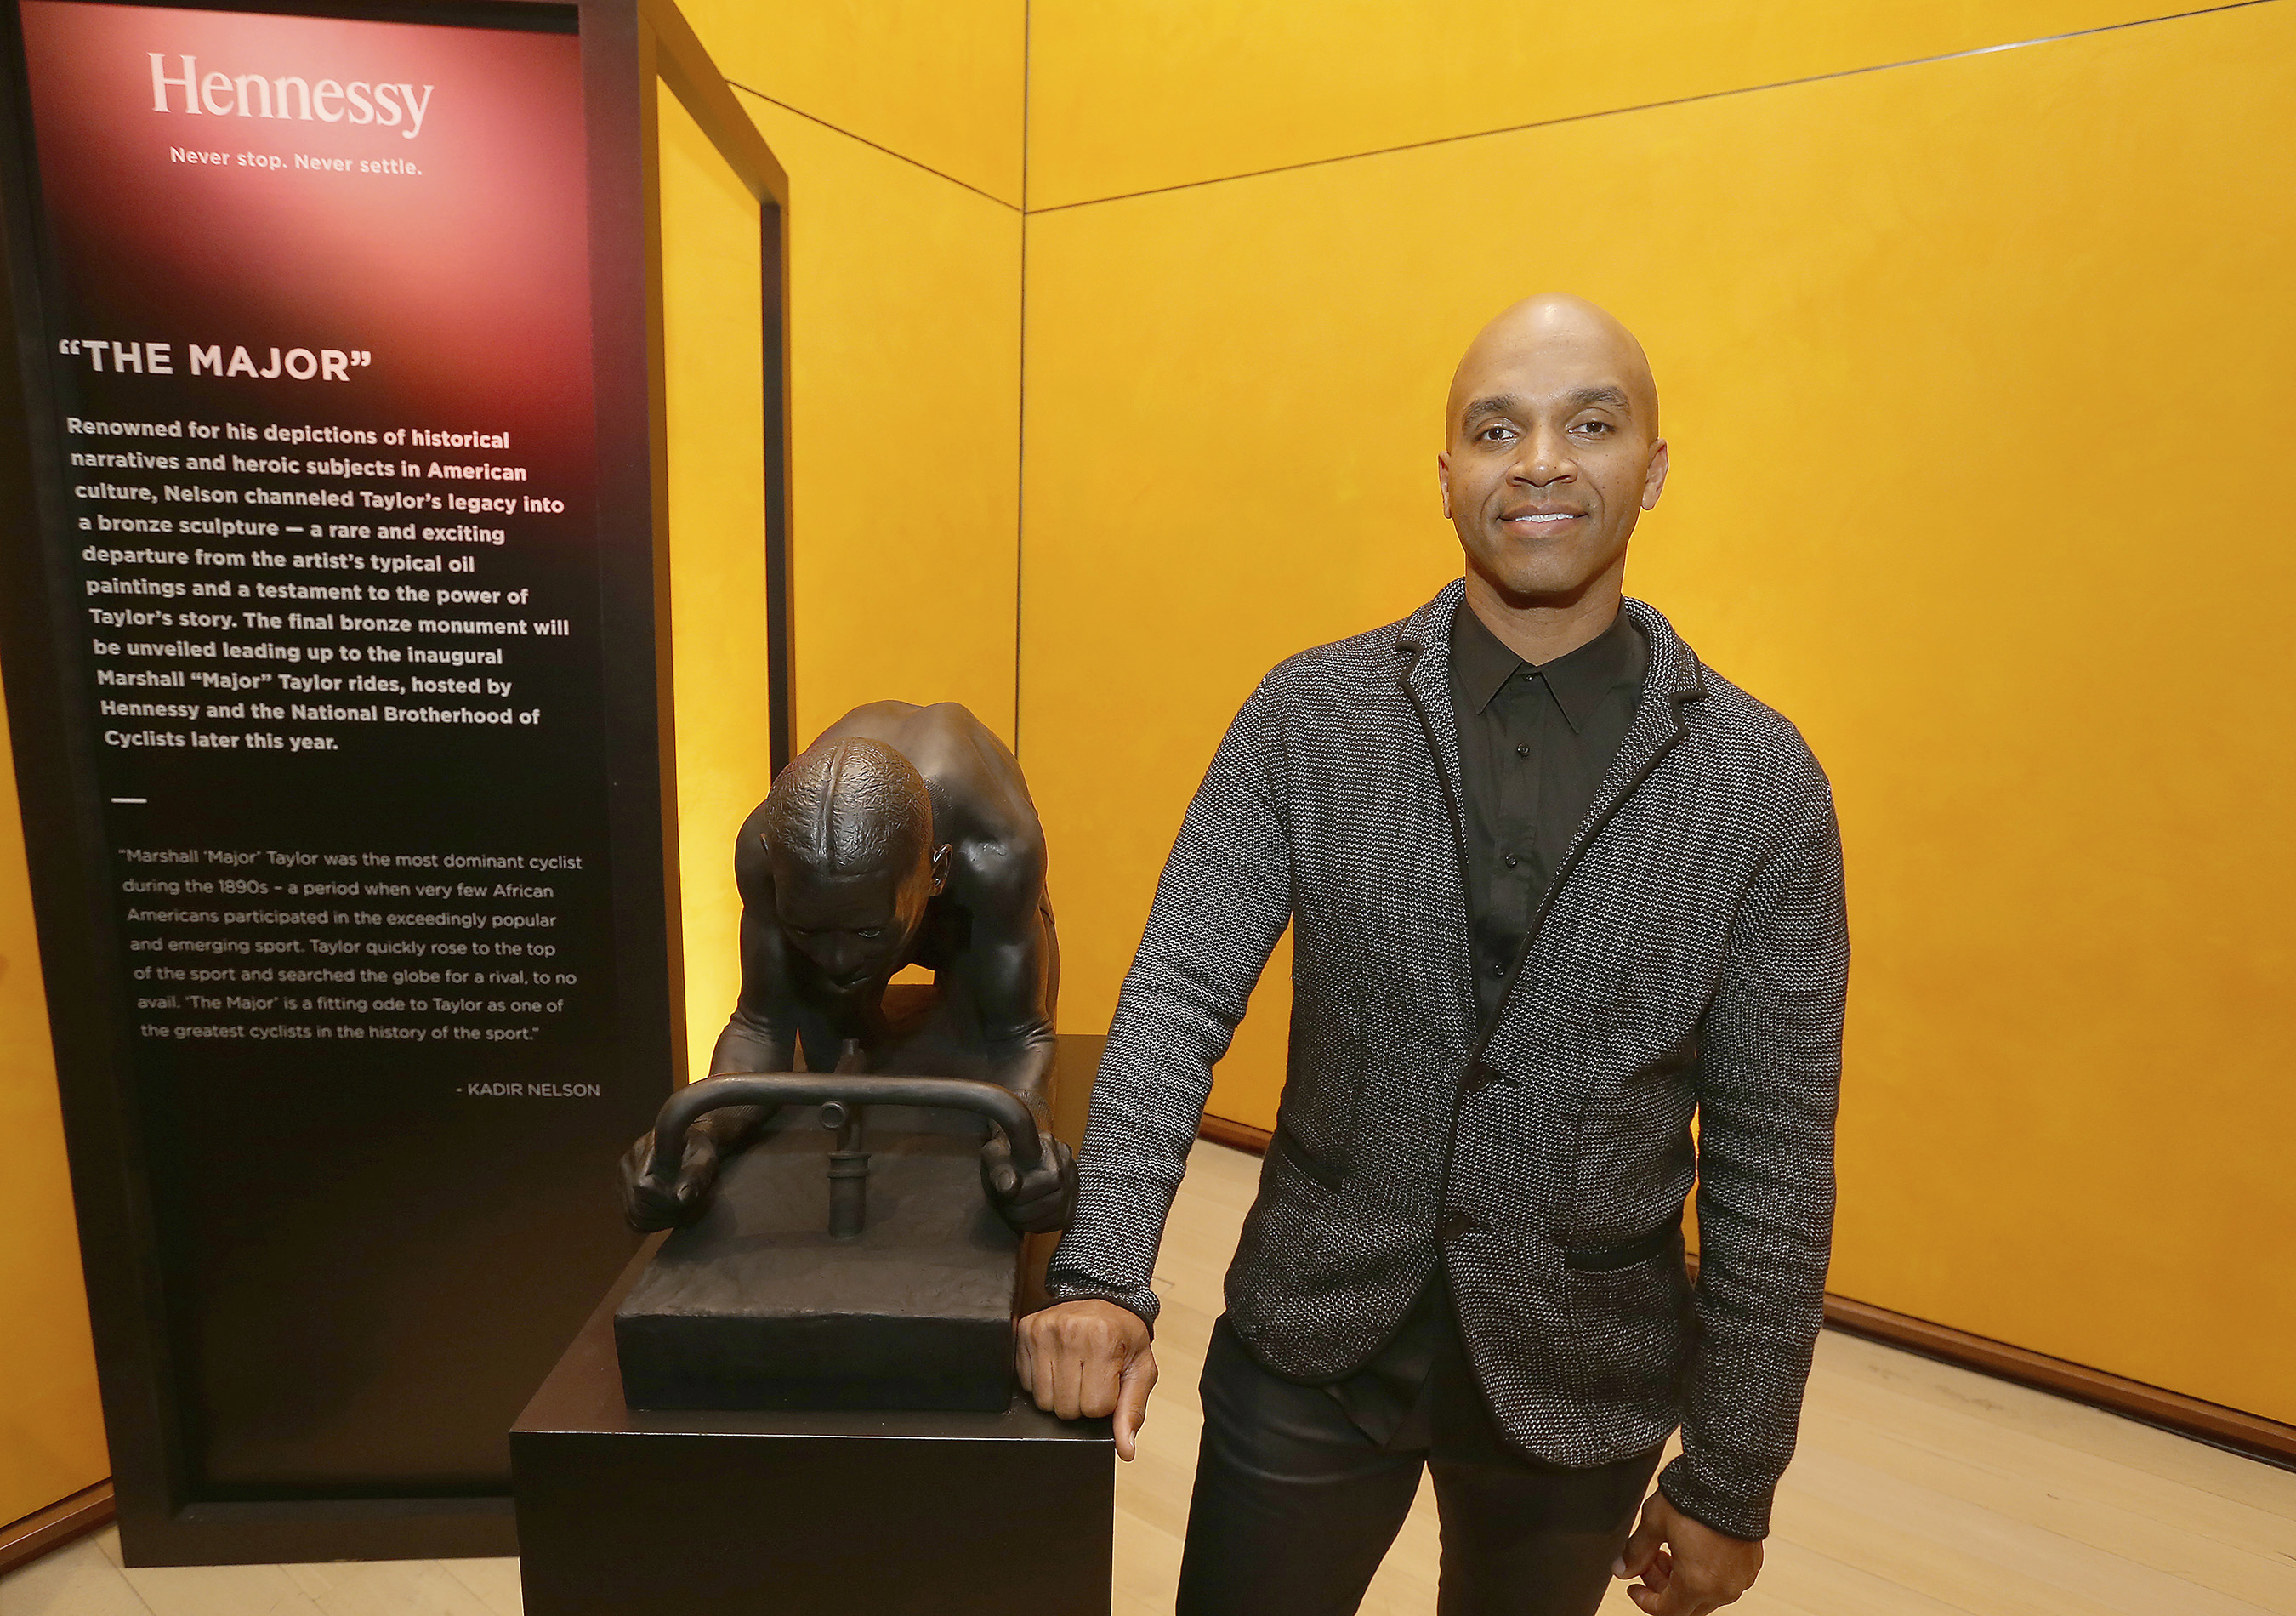 """Artist, author and cycling enthusiast, Kadir Nelson, sculpted a modern-day monument entitled """"The Major"""" - channeling the spirit and achievements of Marshall """"Major"""" Taylor."""